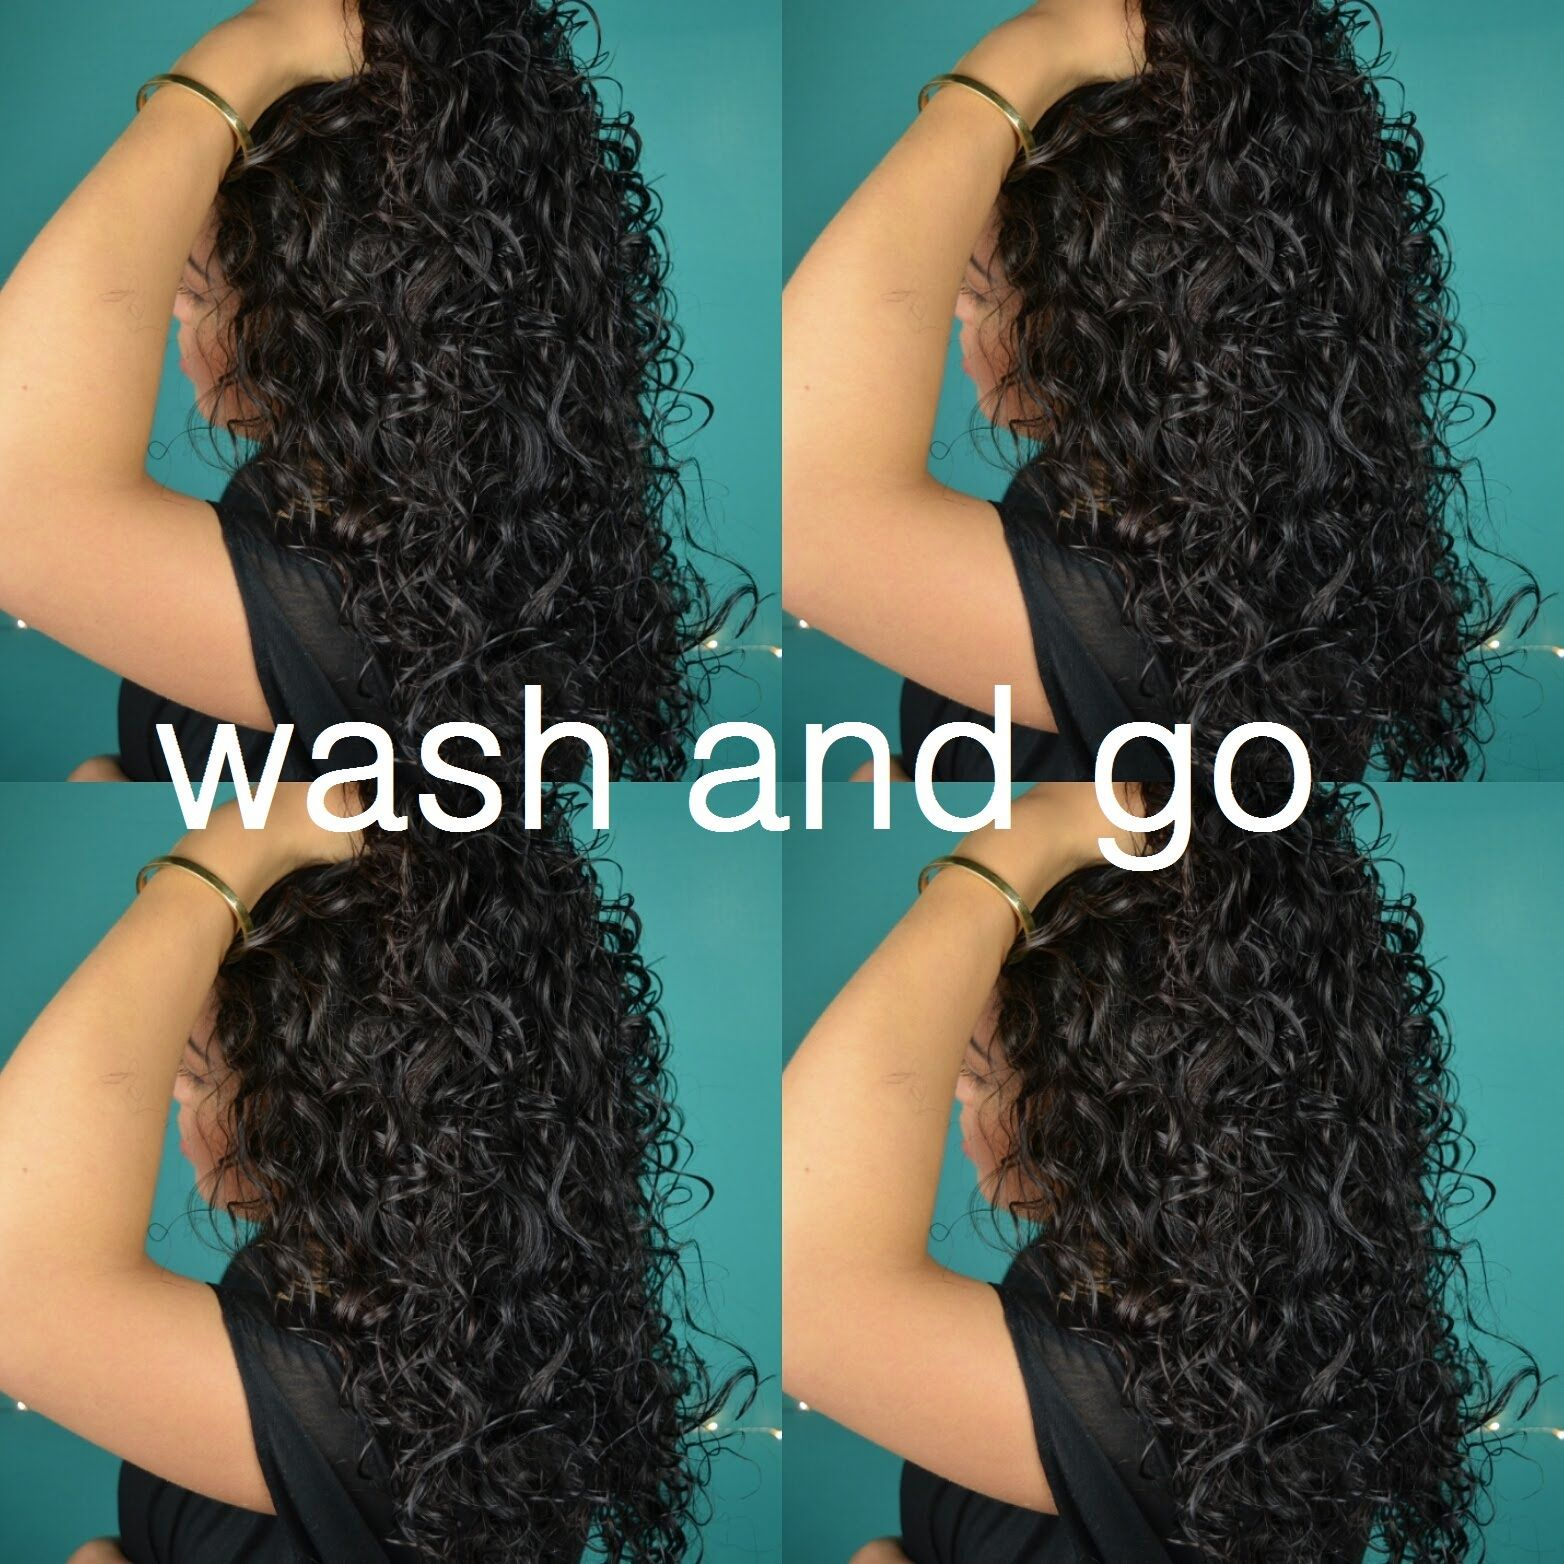 Wash And Go Curly Hair Routine Type 2c Hair (i wouldn